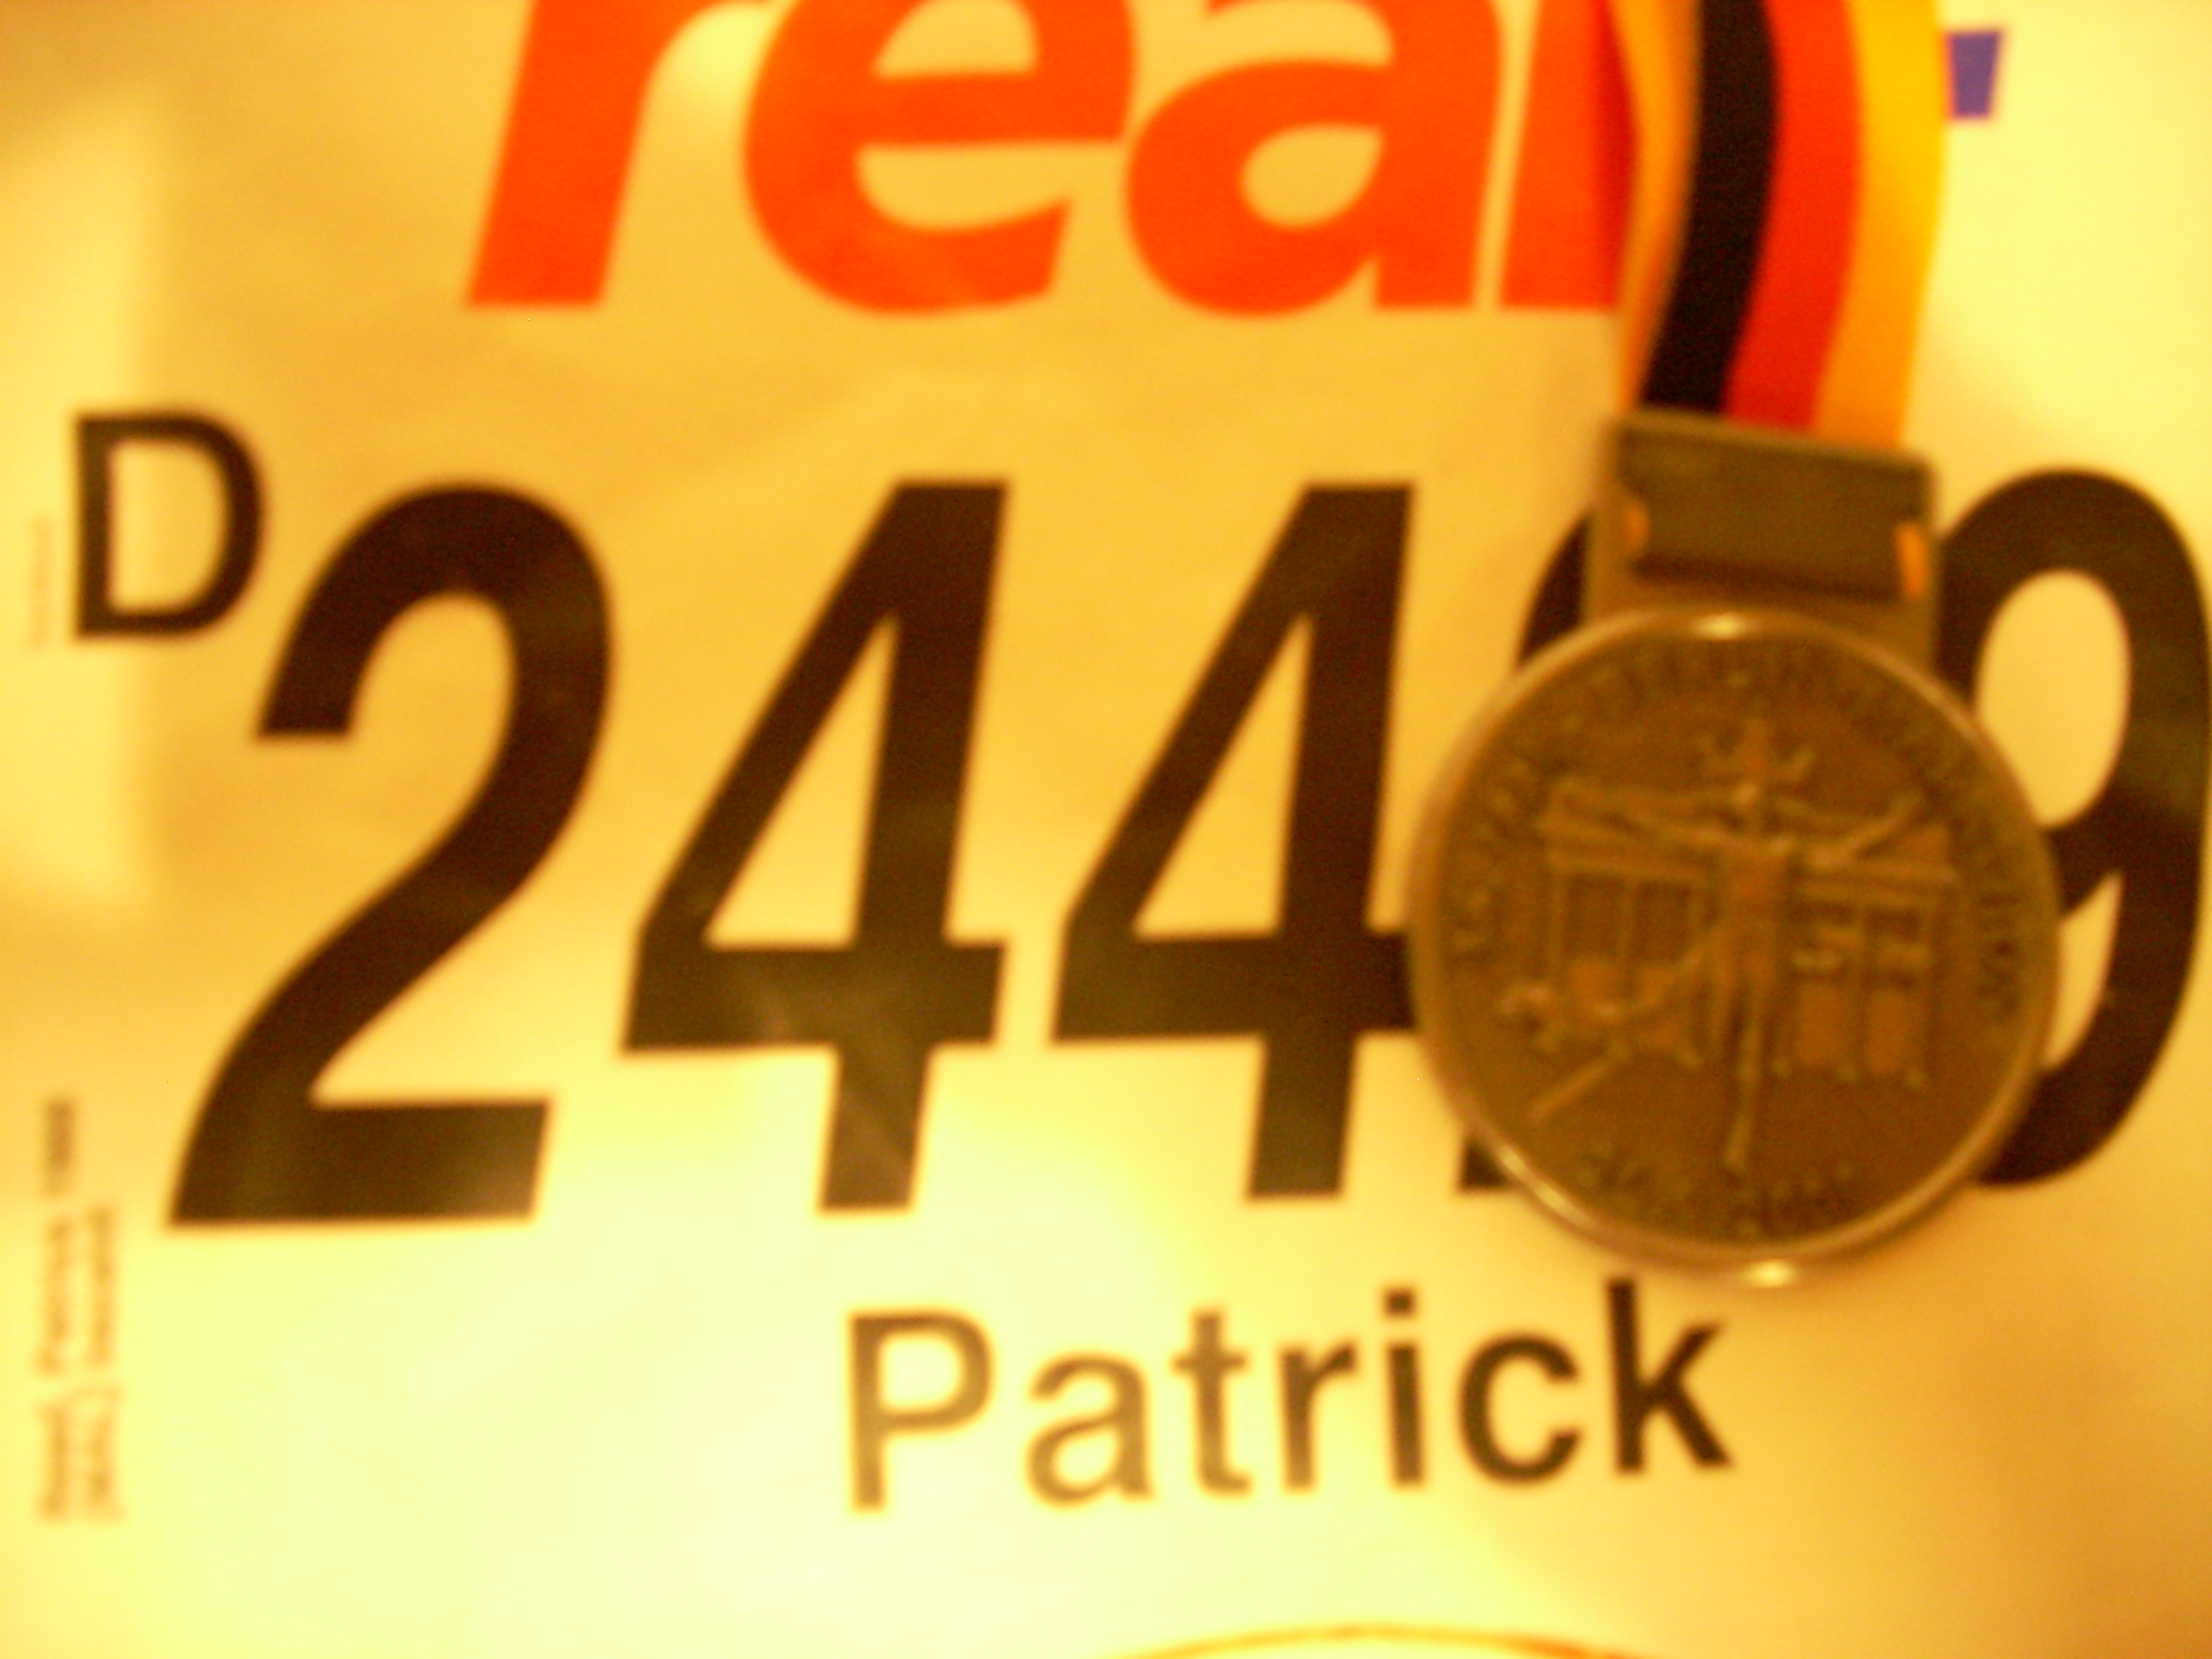 My race number and finisher's medal